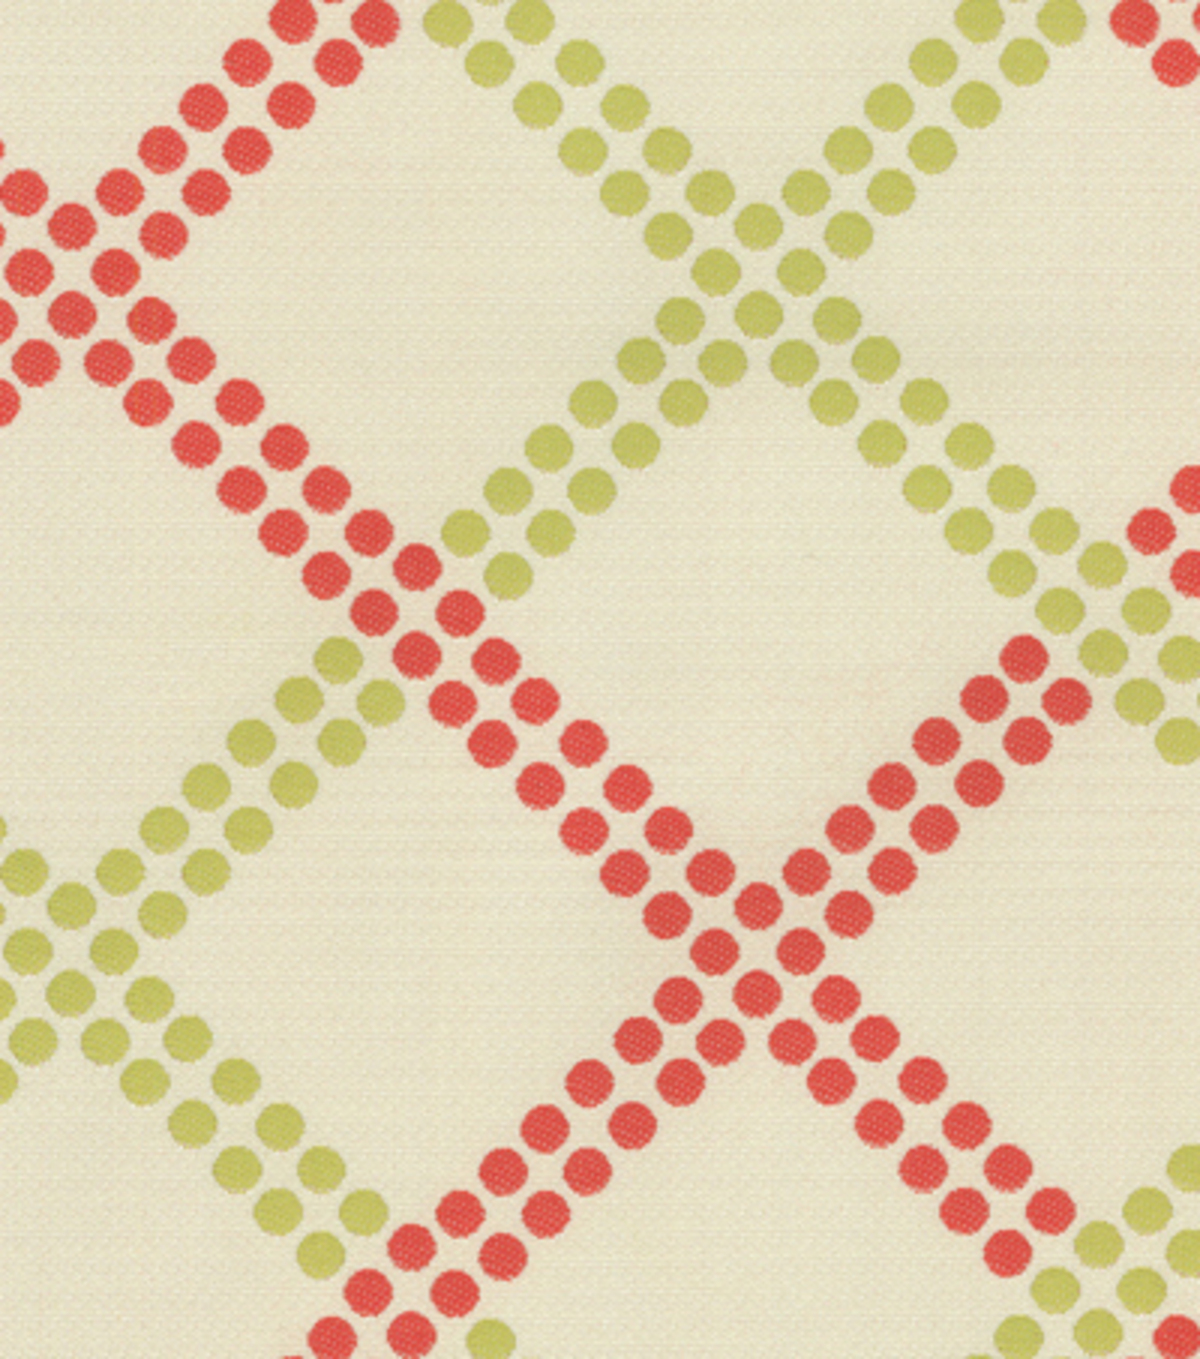 Home Decor 8\u0022x8\u0022 Fabric Swatch-Upholstery Fabric-Waverly Crossway/Watermelon